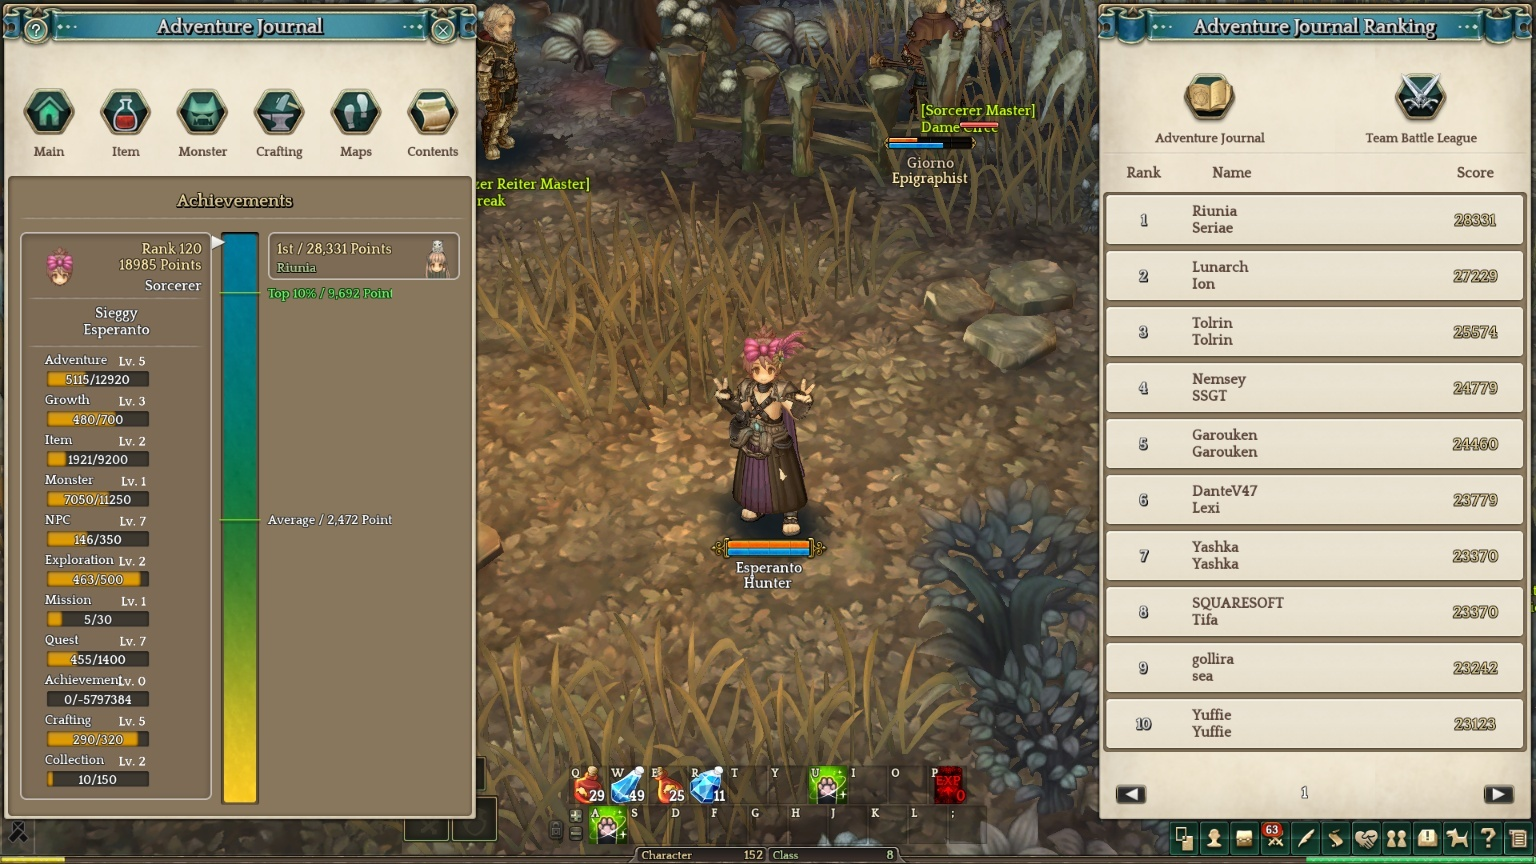 Sorcerer's Grimoire (Sorcerer skill guide) - Class and Rank